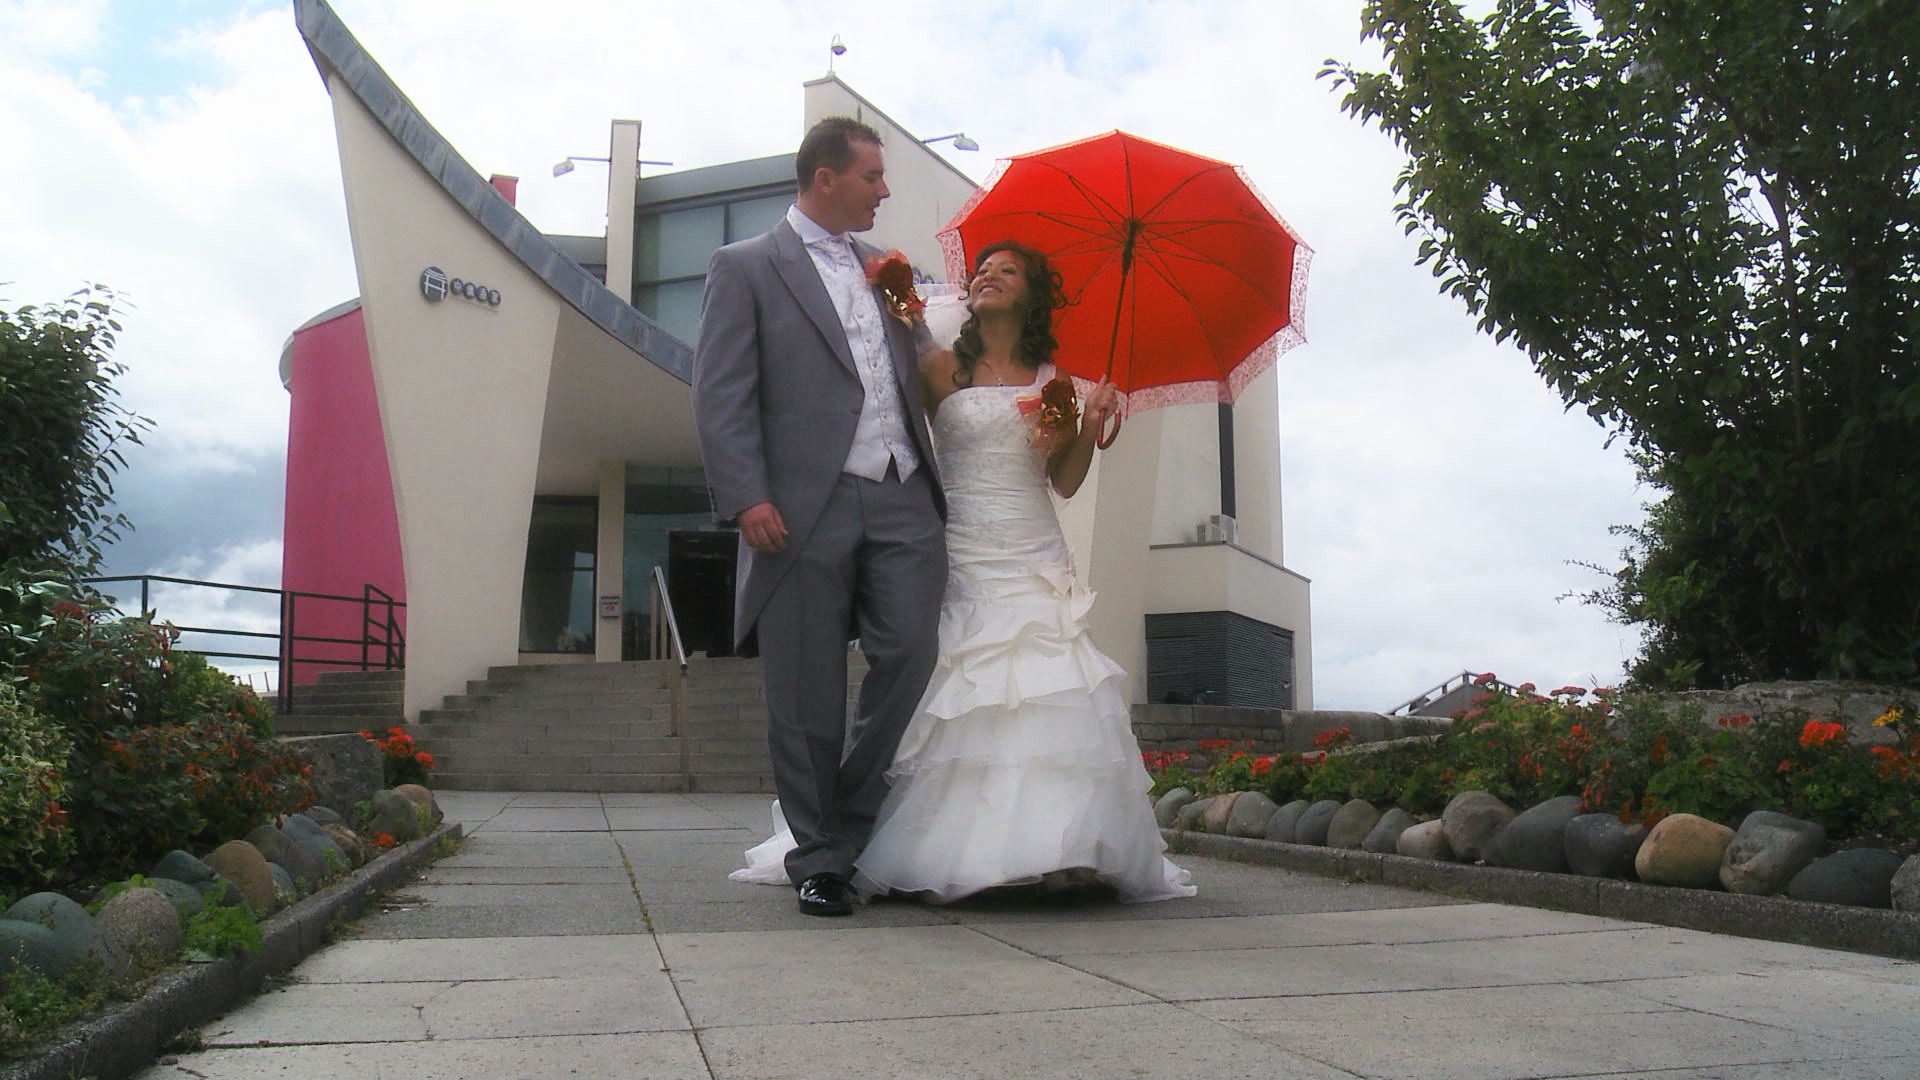 A bride and groom walk towards the videographer as the bride holds a traditional red chinese umbrella before their wedding reception at Chung Ku by the liverpool waterfront